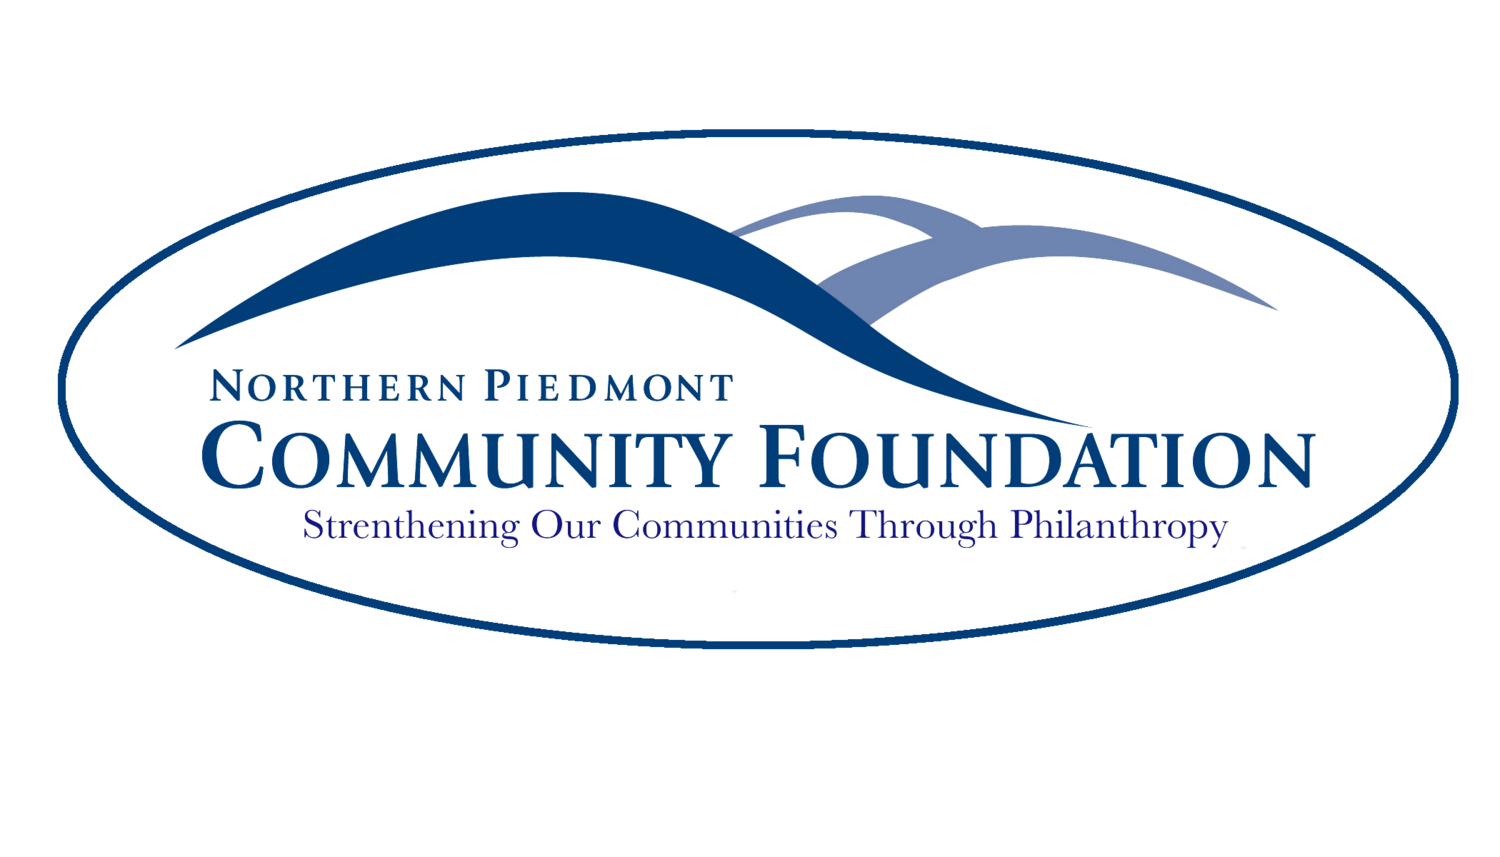 Northern Piedmont Community Foundation